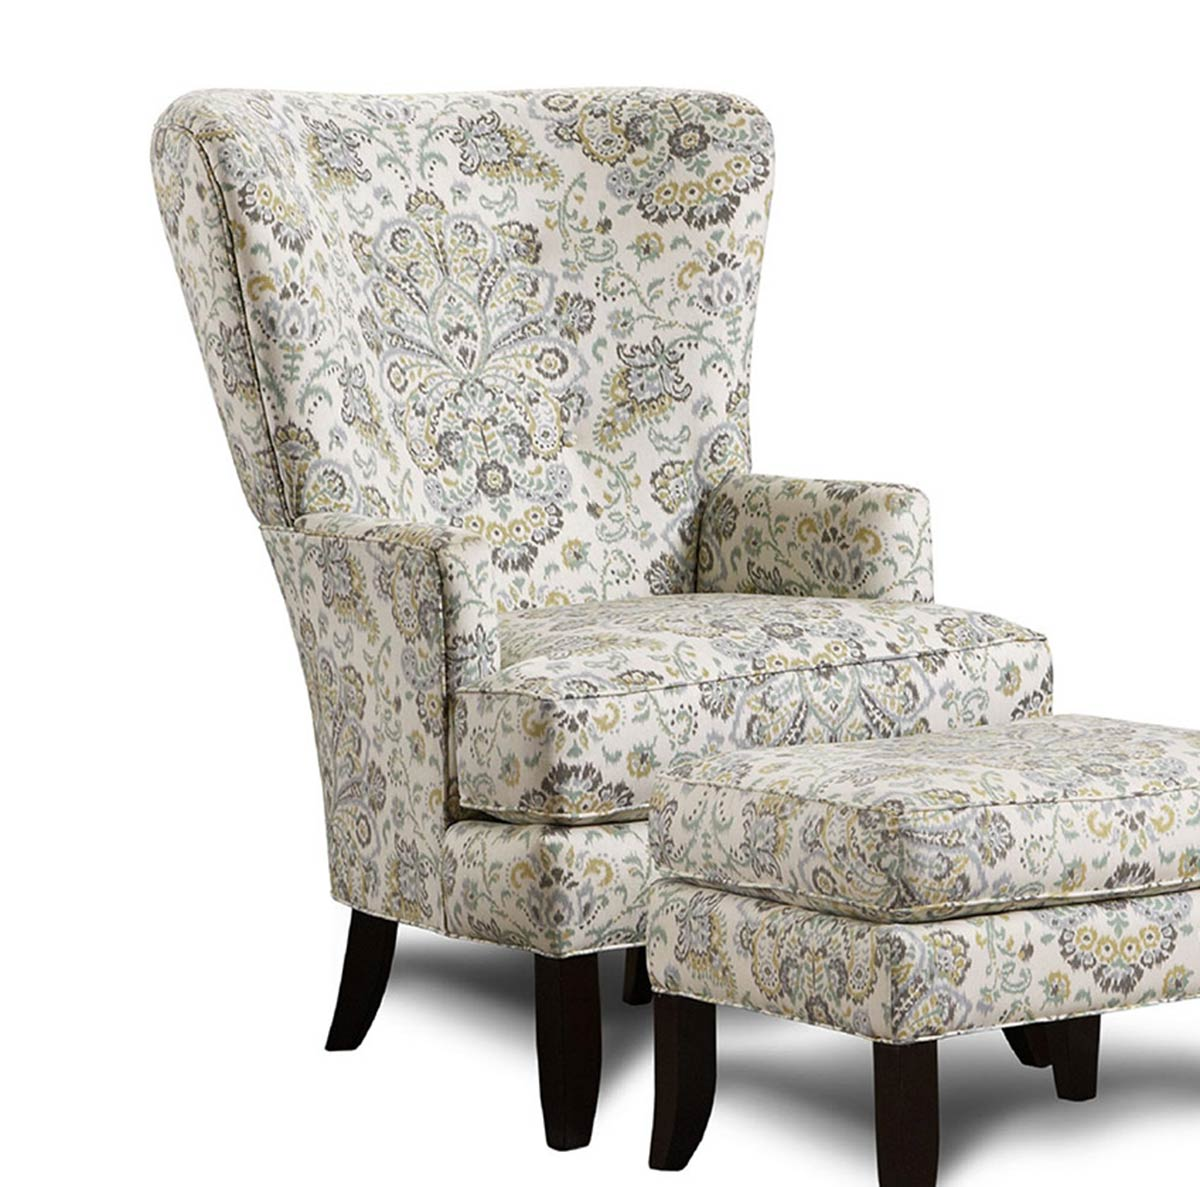 Chelsea Home Davin Accent Chair - Multicolor